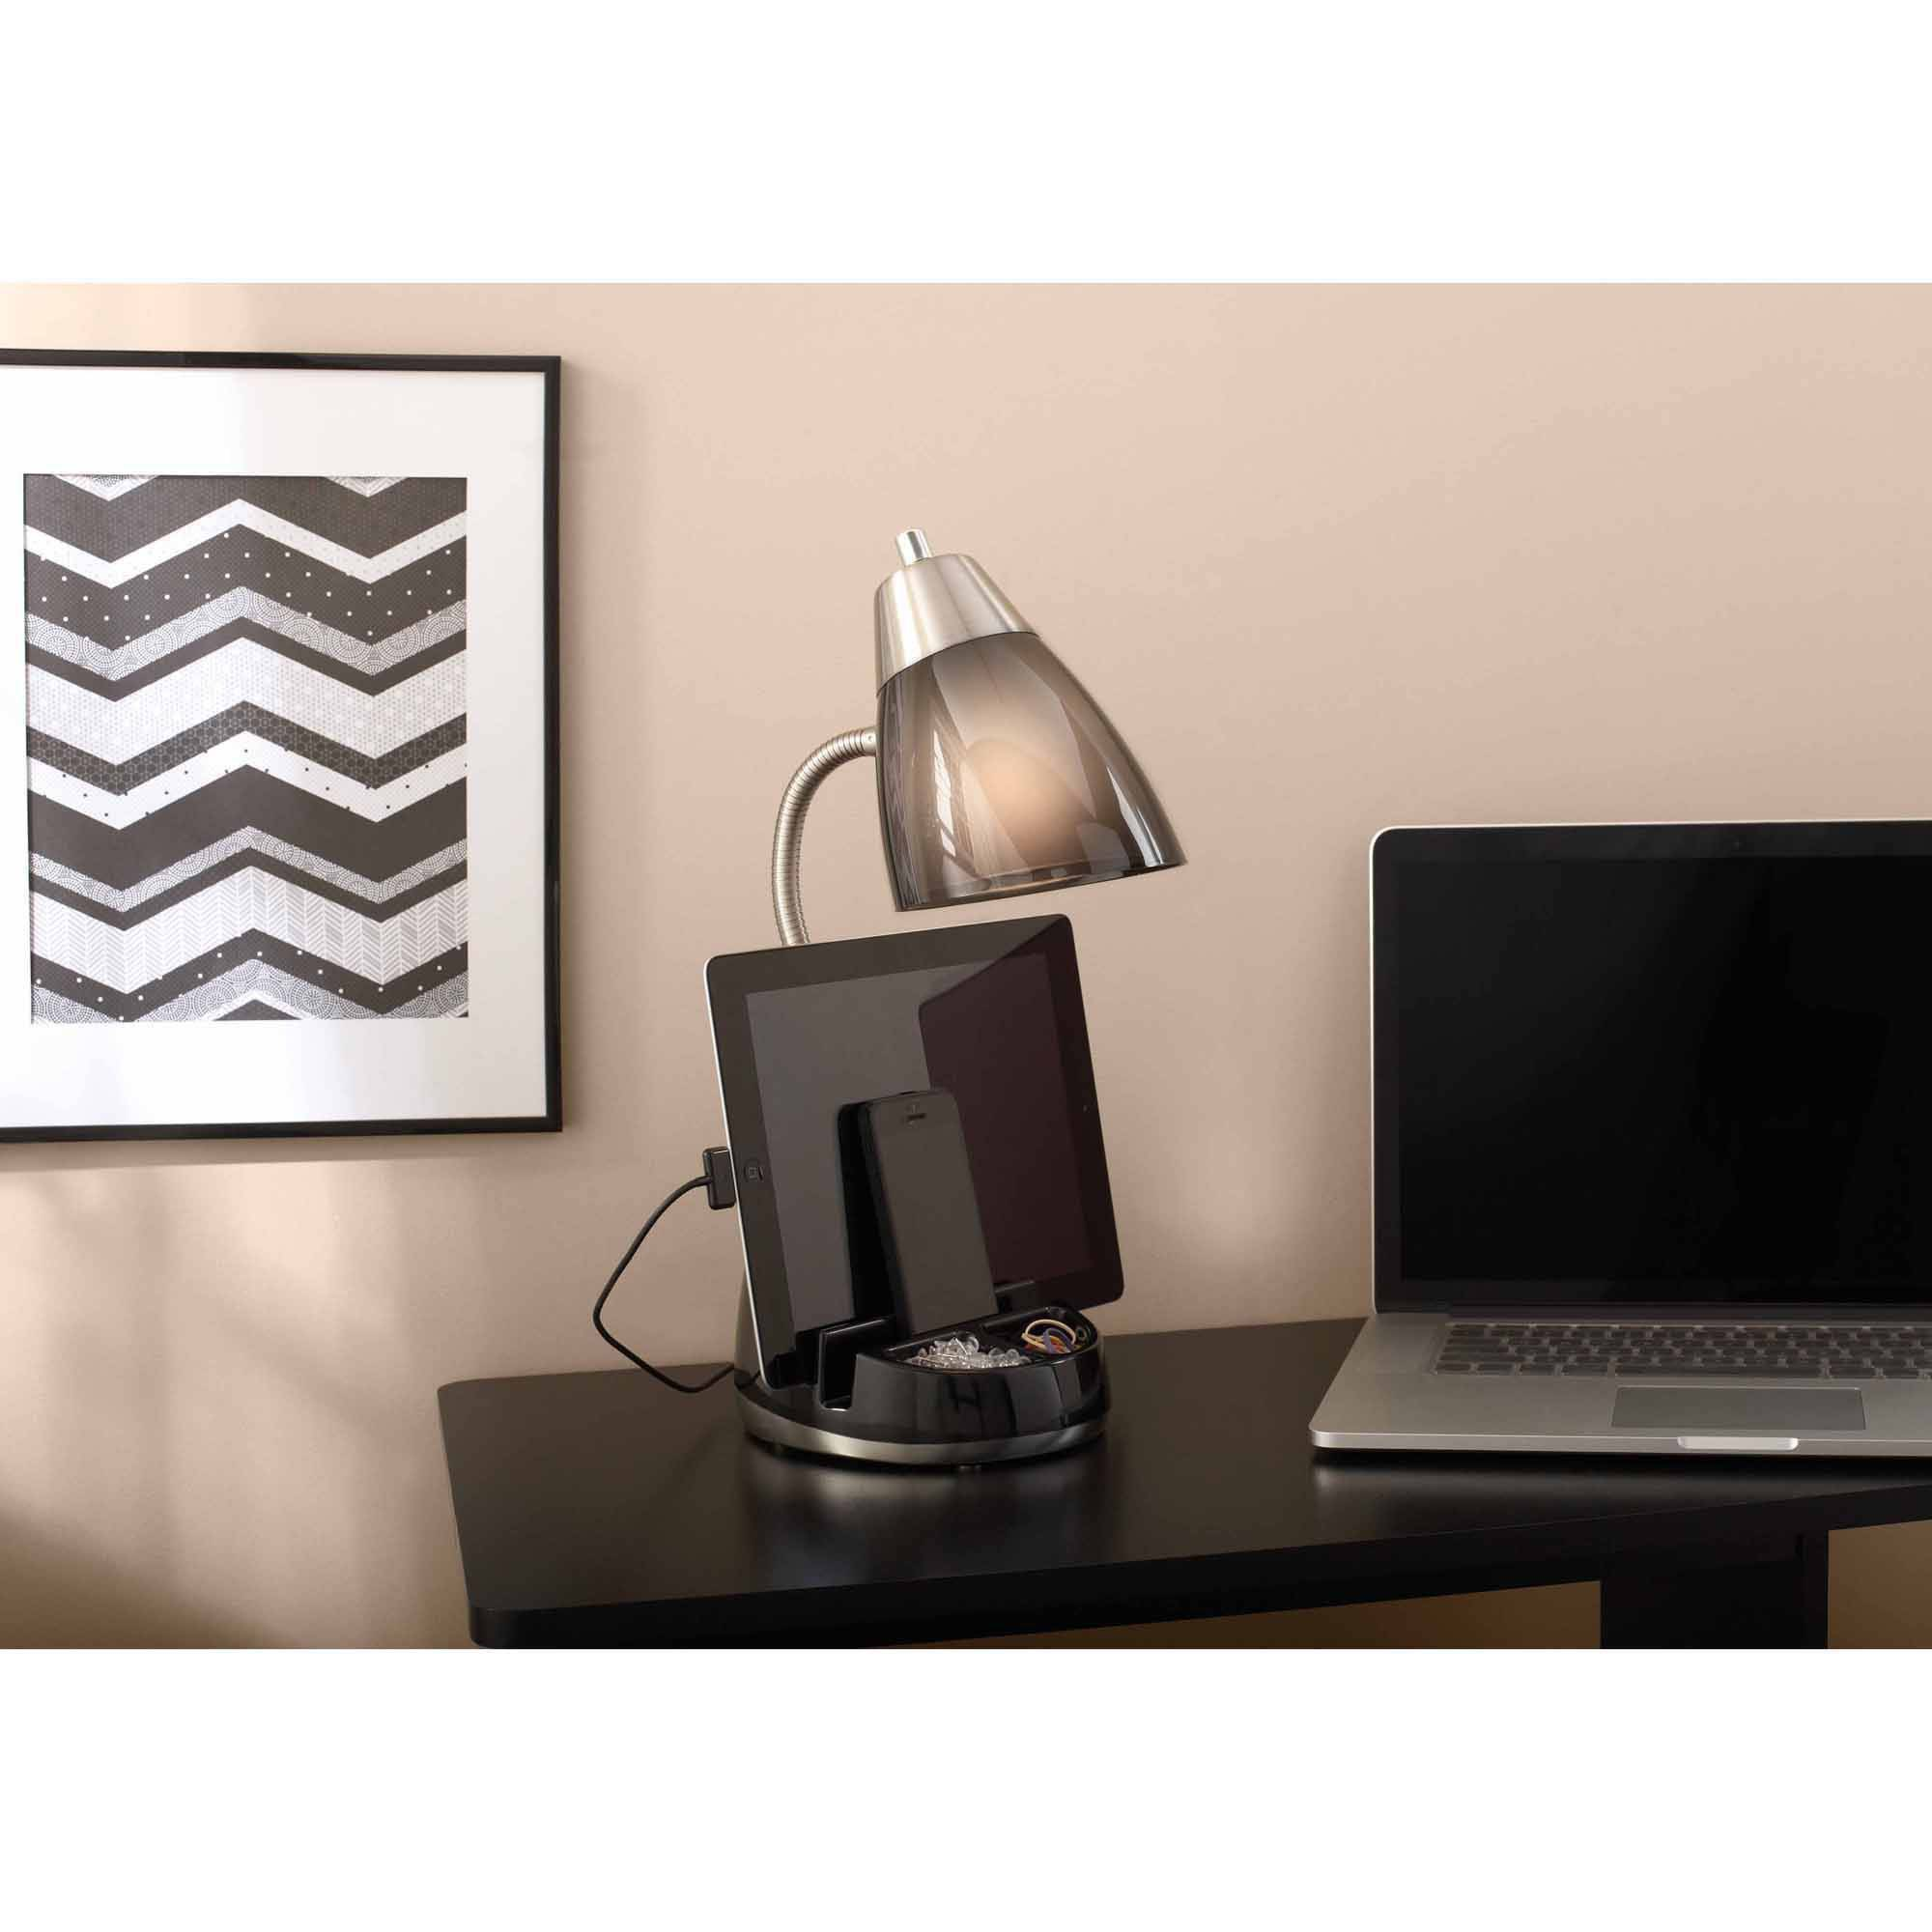 Mainstays Tablet Organizer Desk Lamp with CFL Bulb Walmart